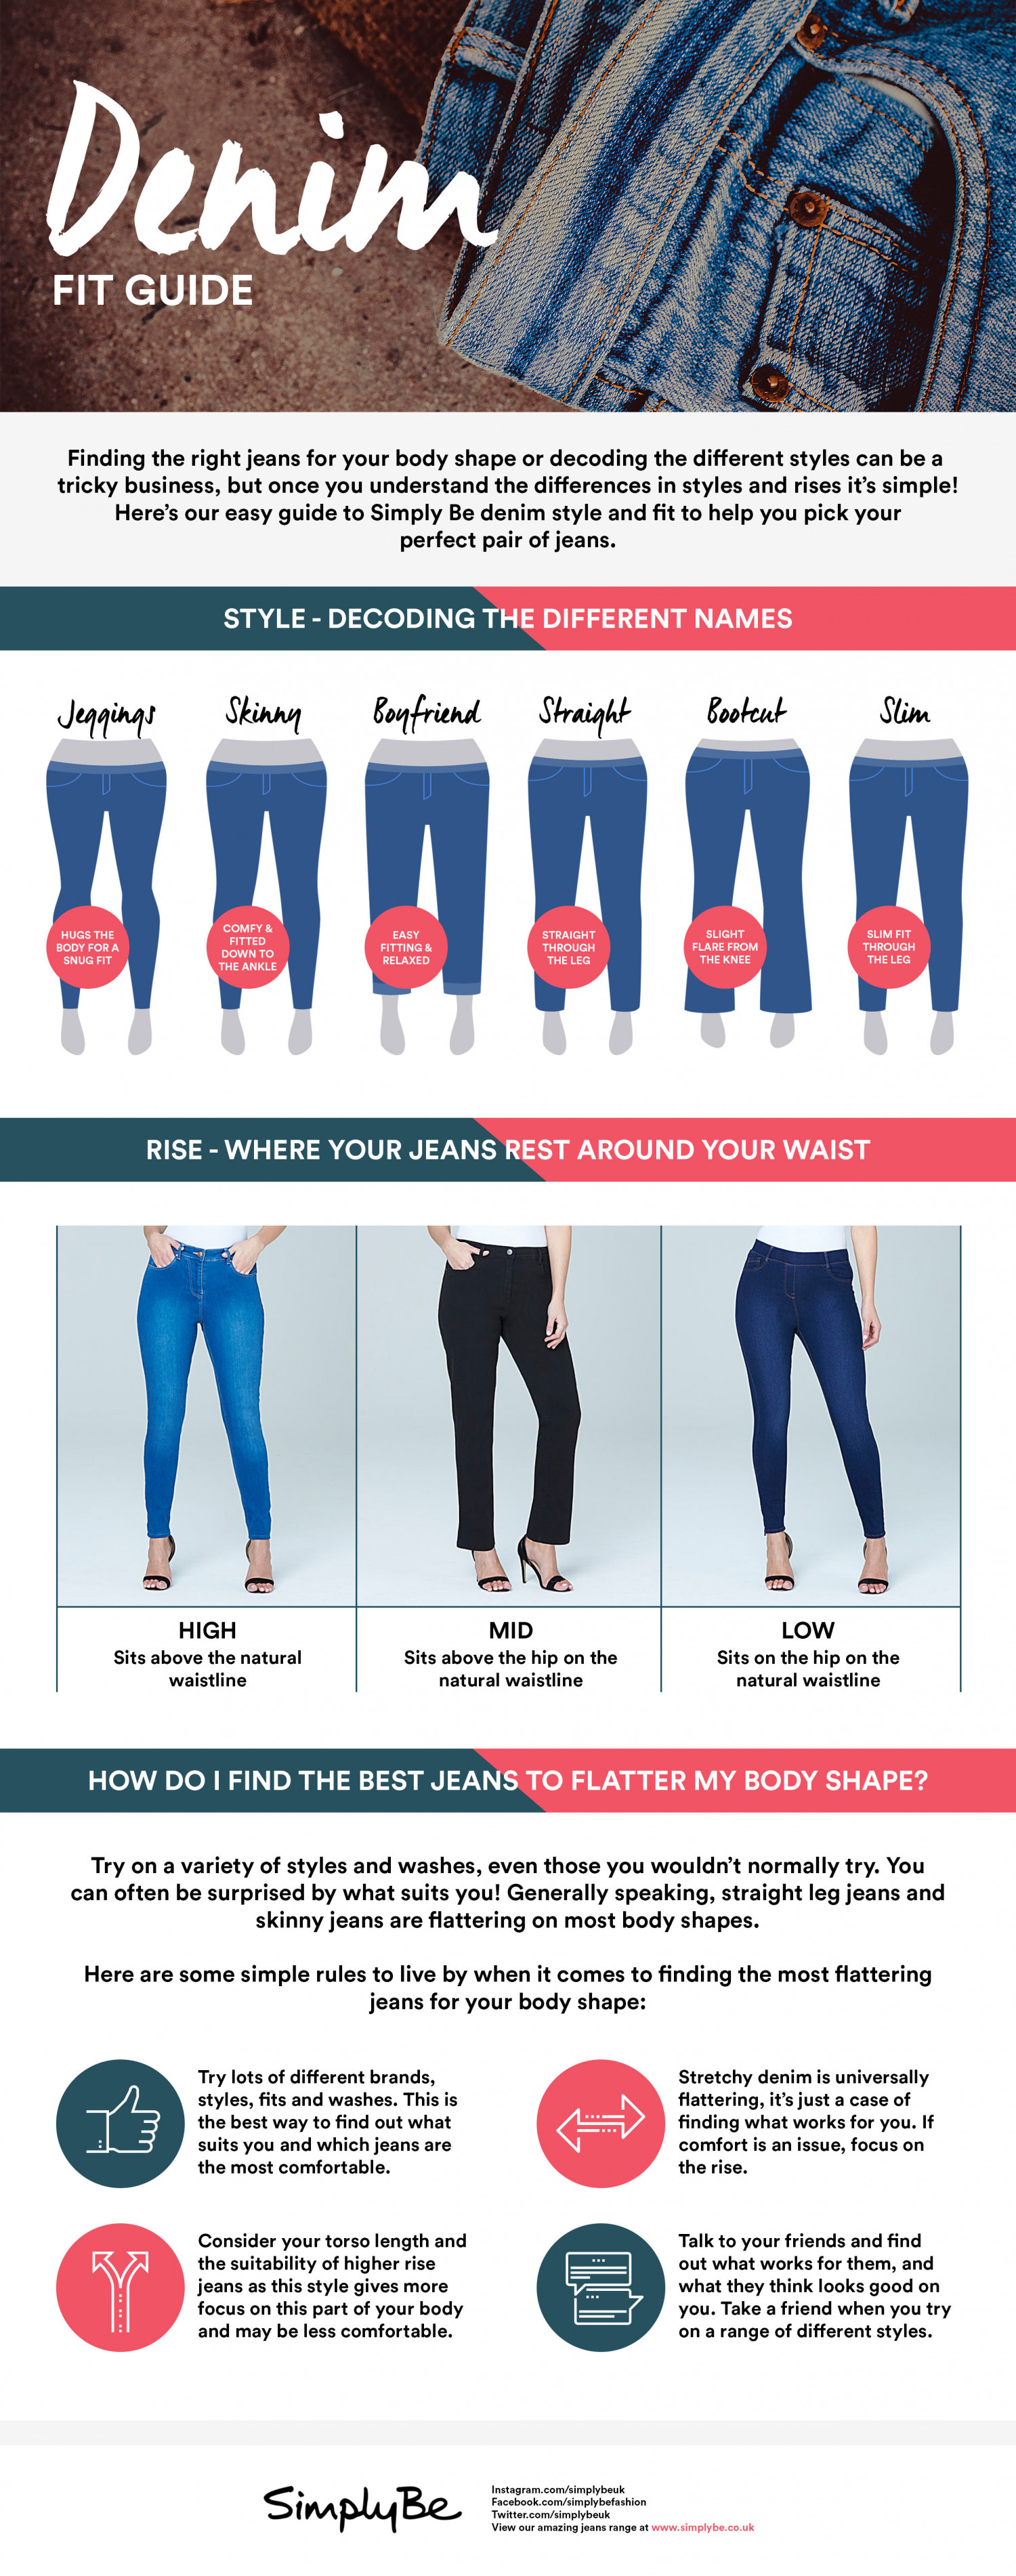 The Denim Fit Guide Infographic